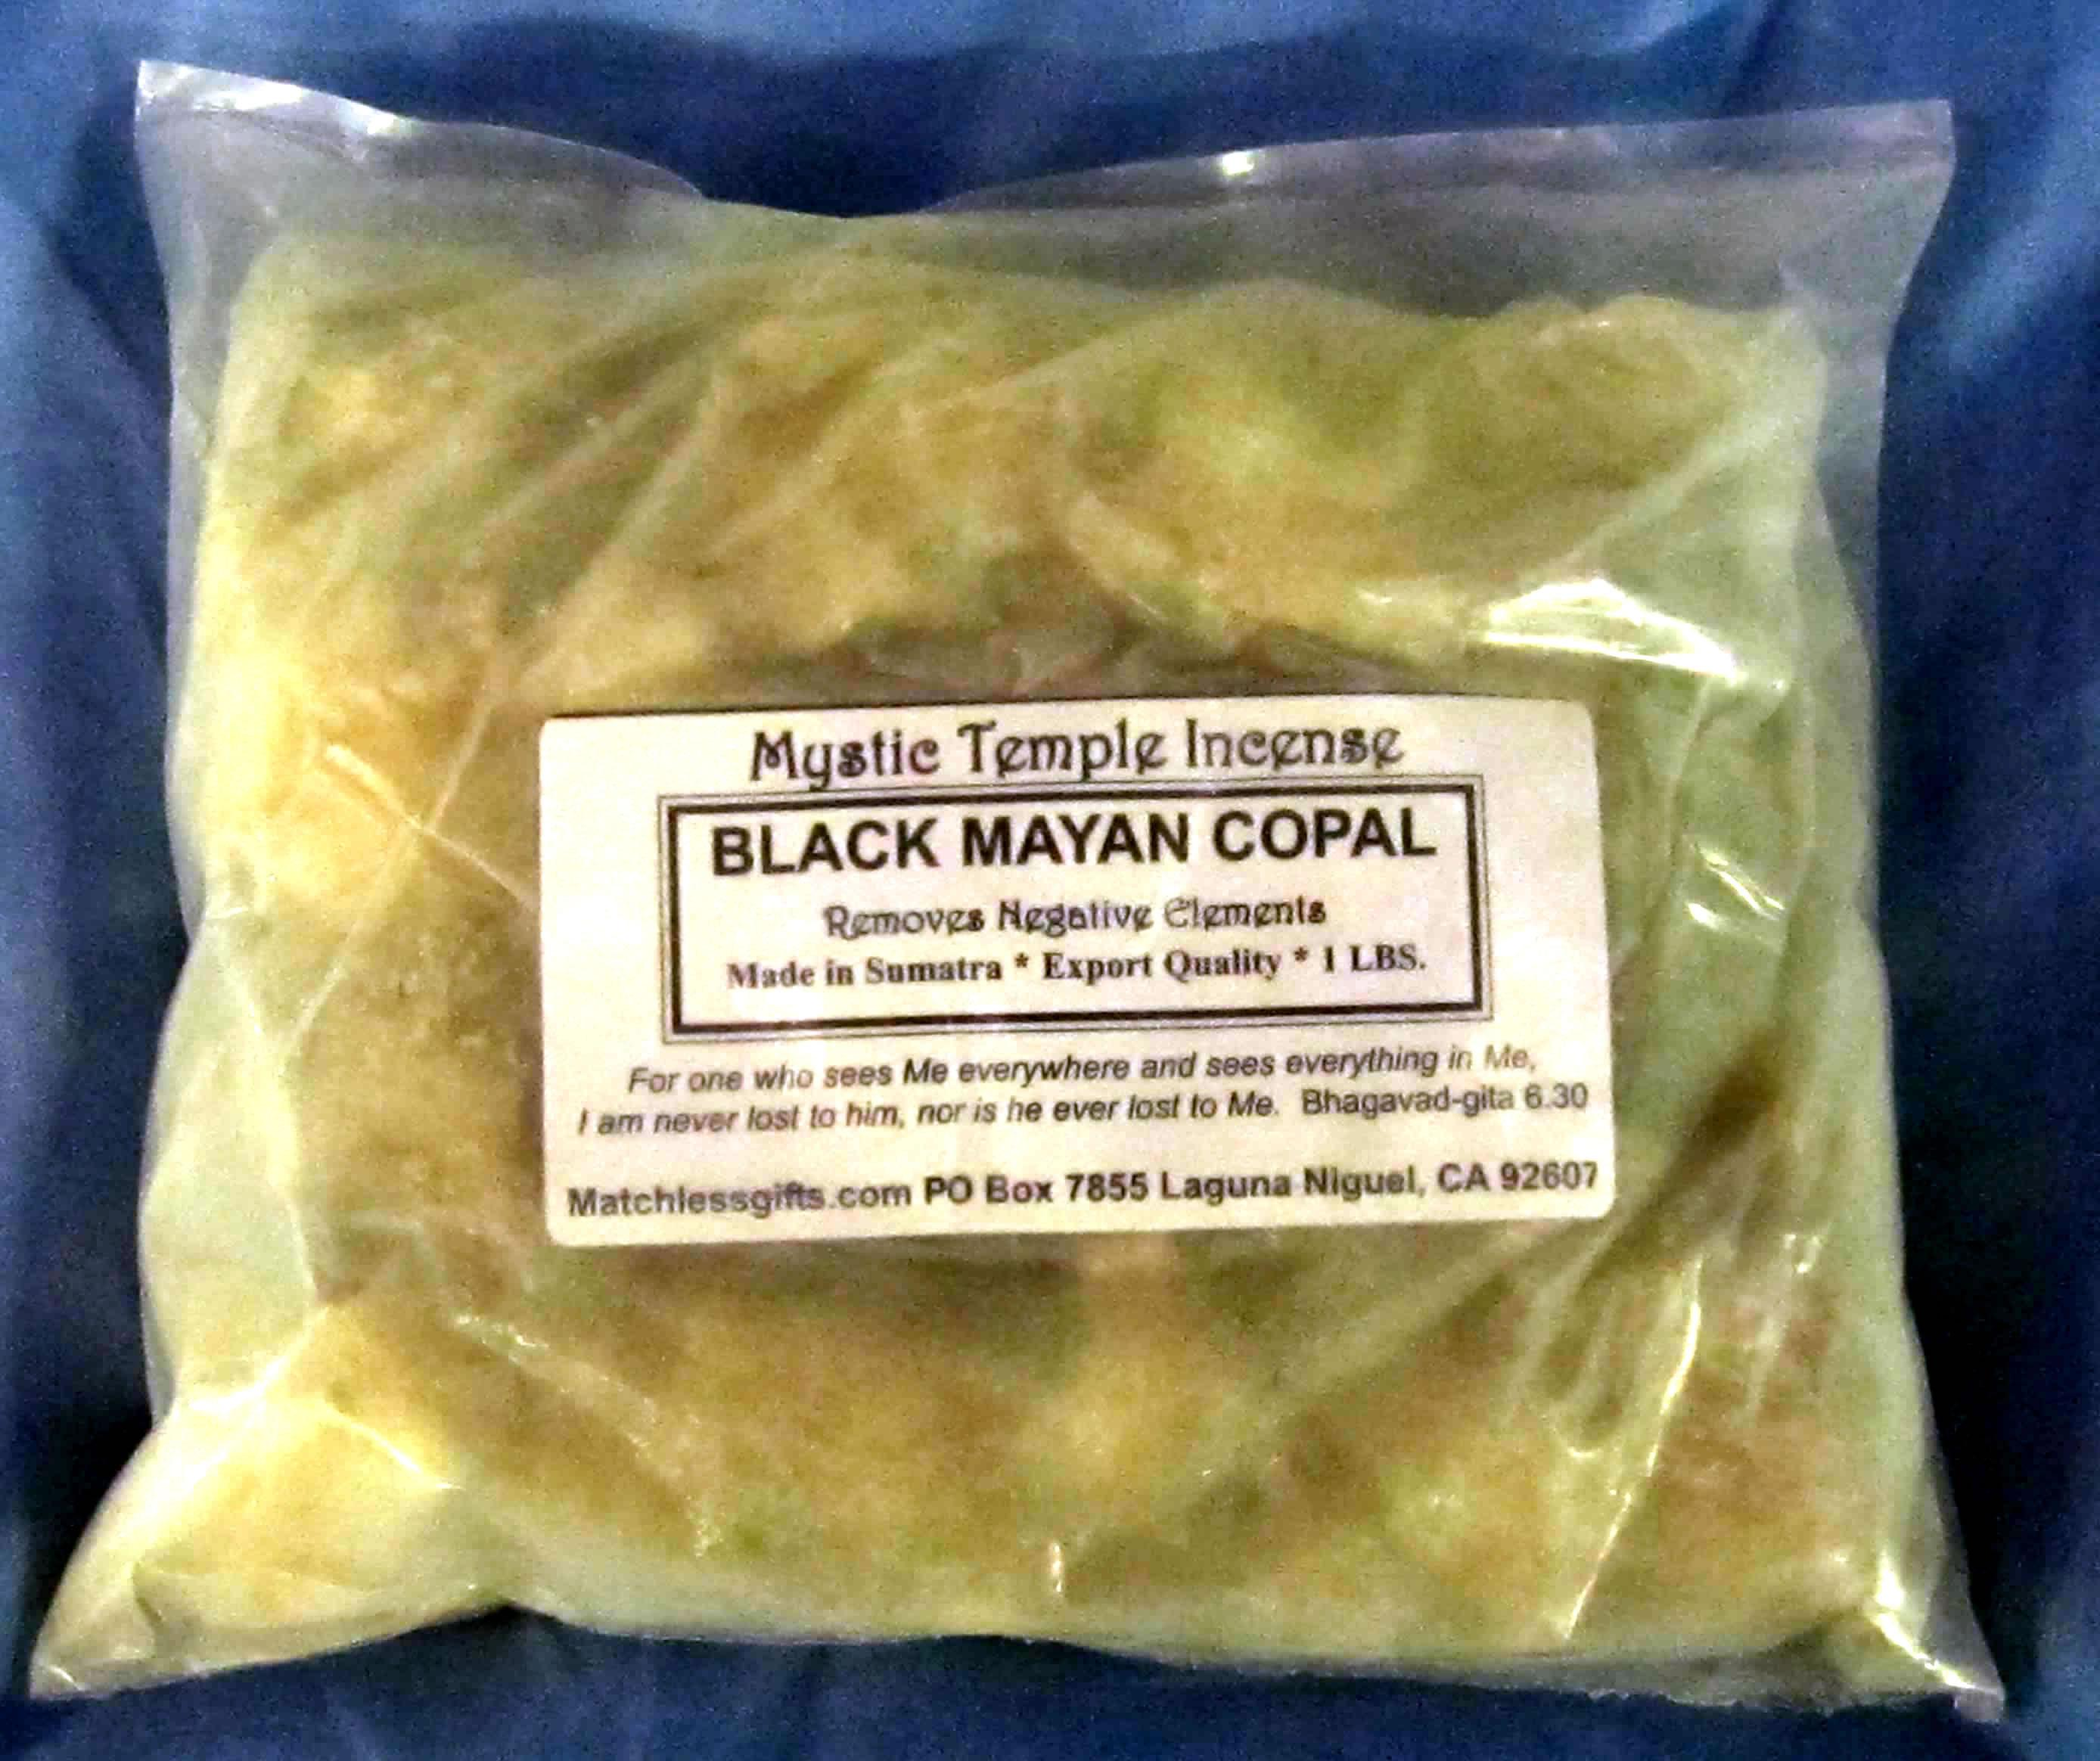 Bulk Resin - Mystic Temple Incense: Black Mayan Copal